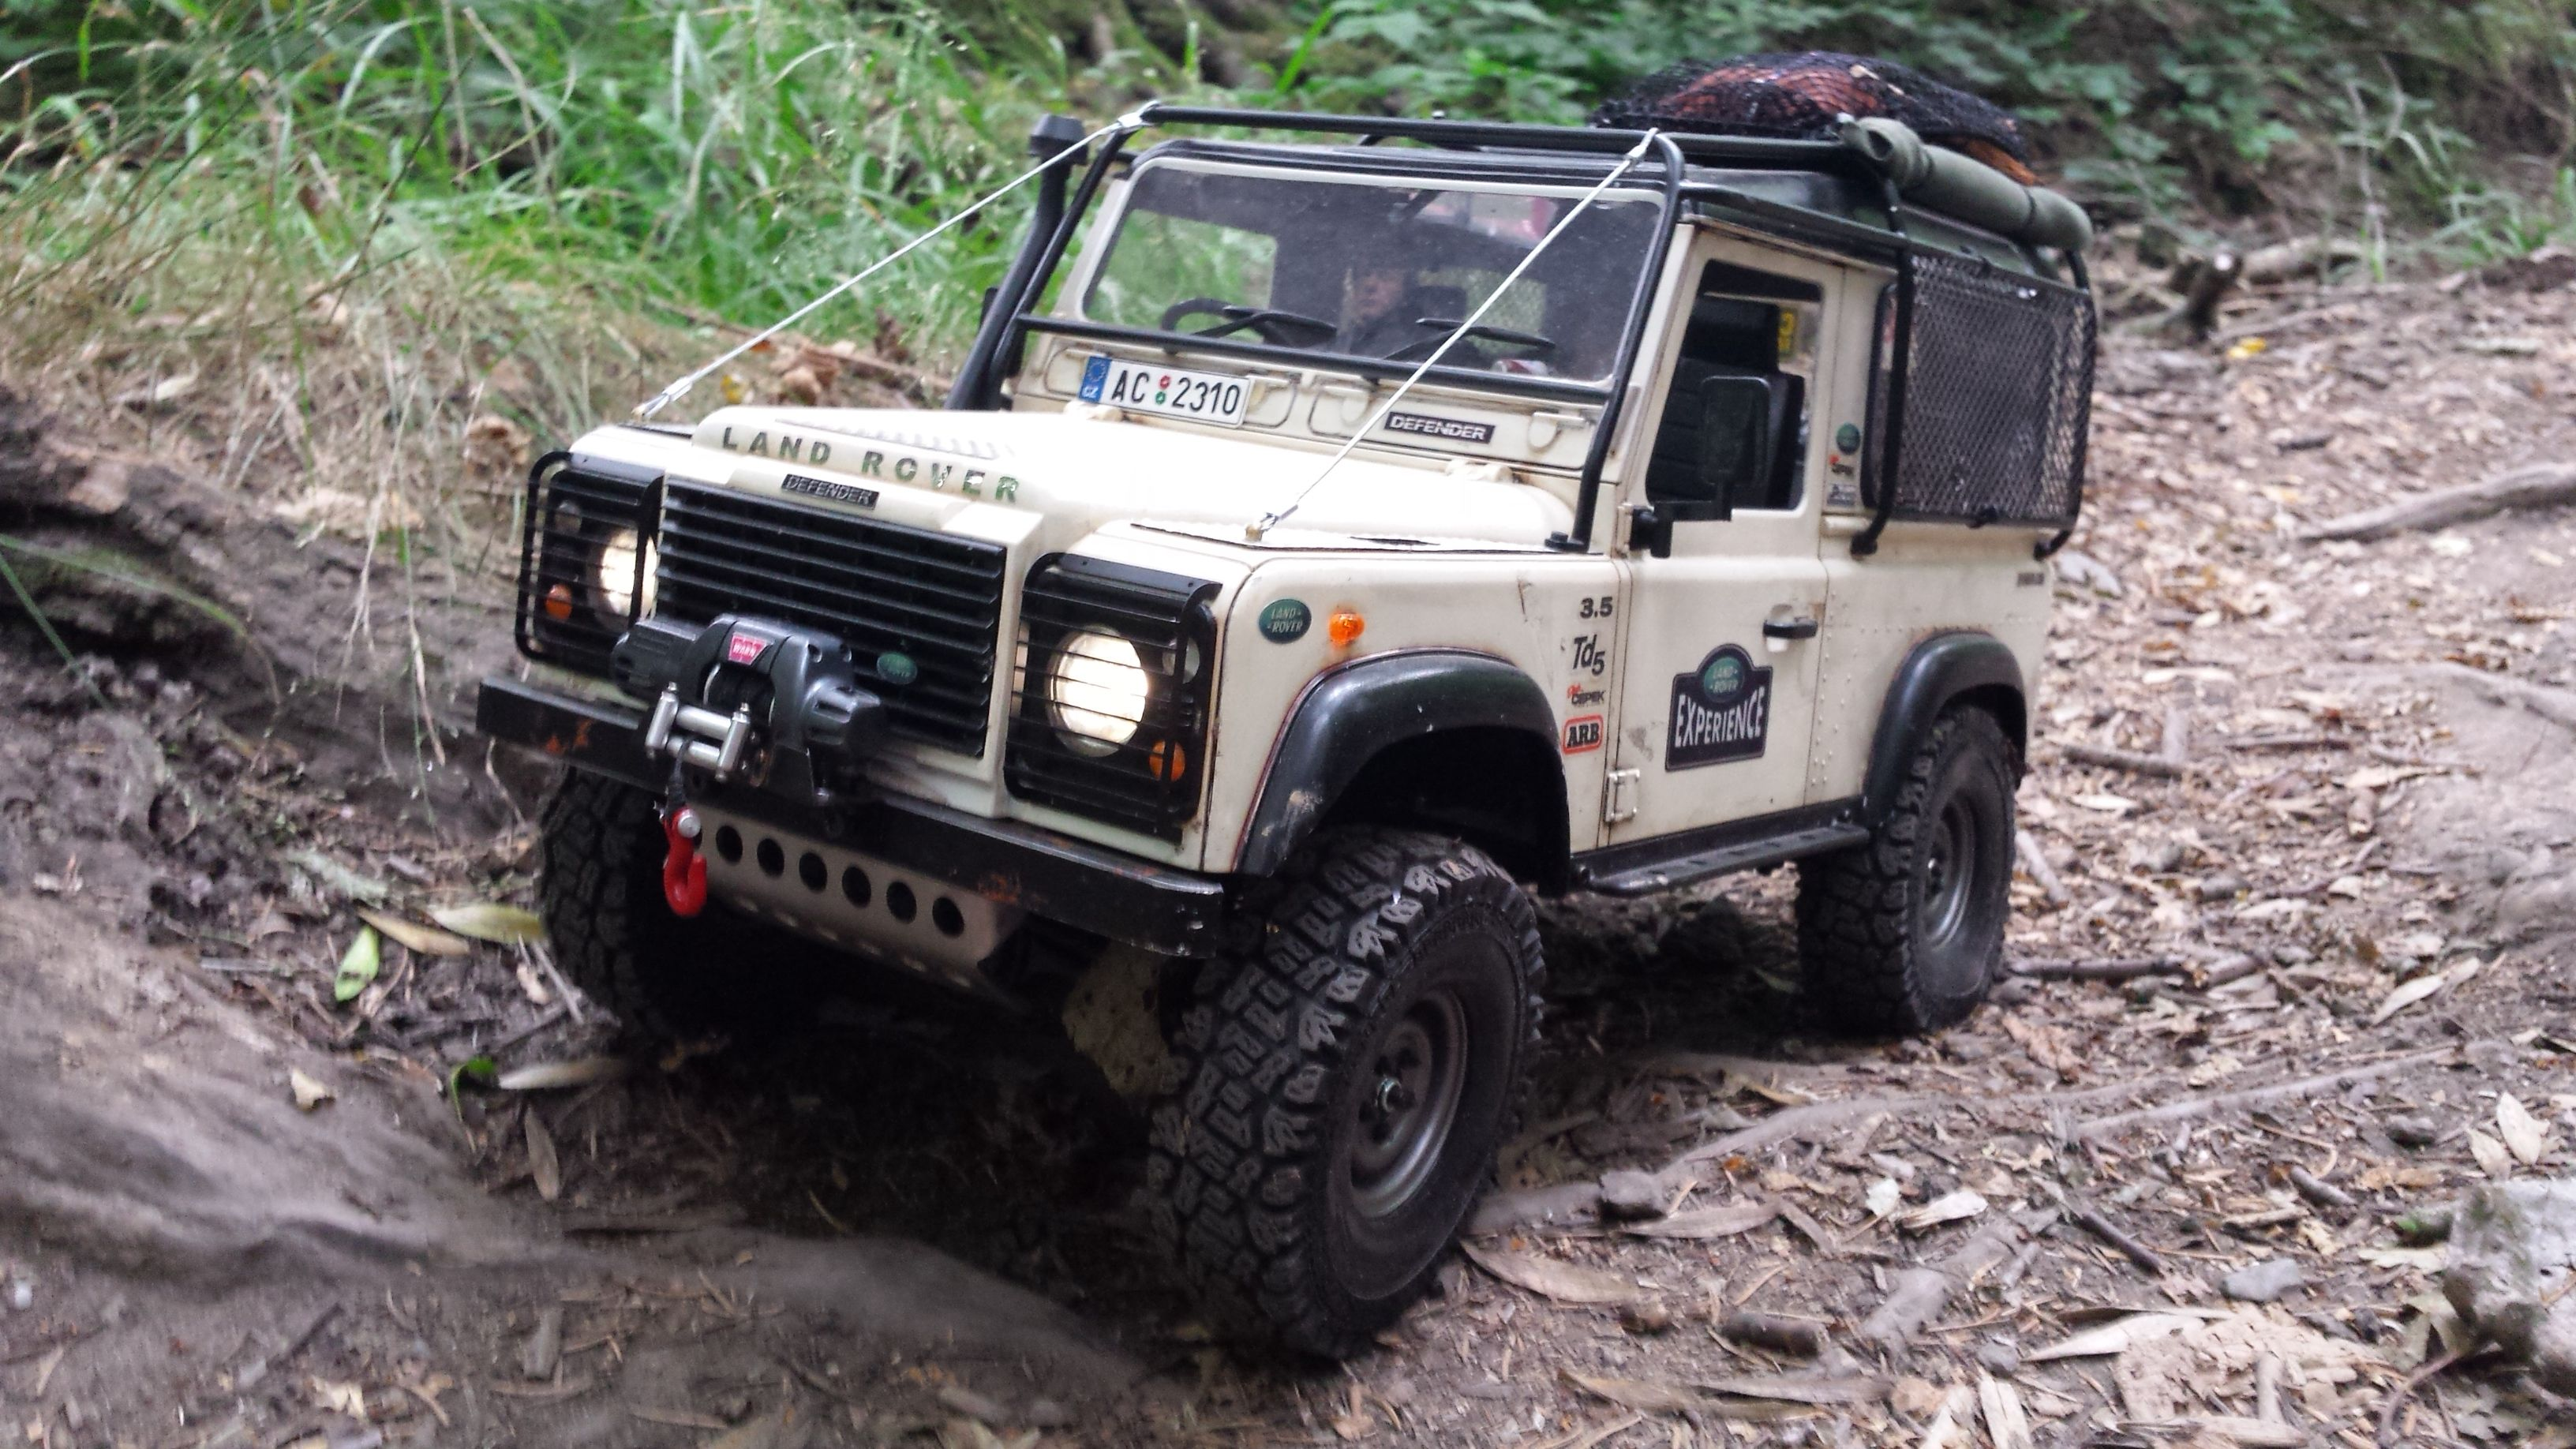 Jeep car toys  Pin by Petr Cidorak on RC Scalers  Pinterest